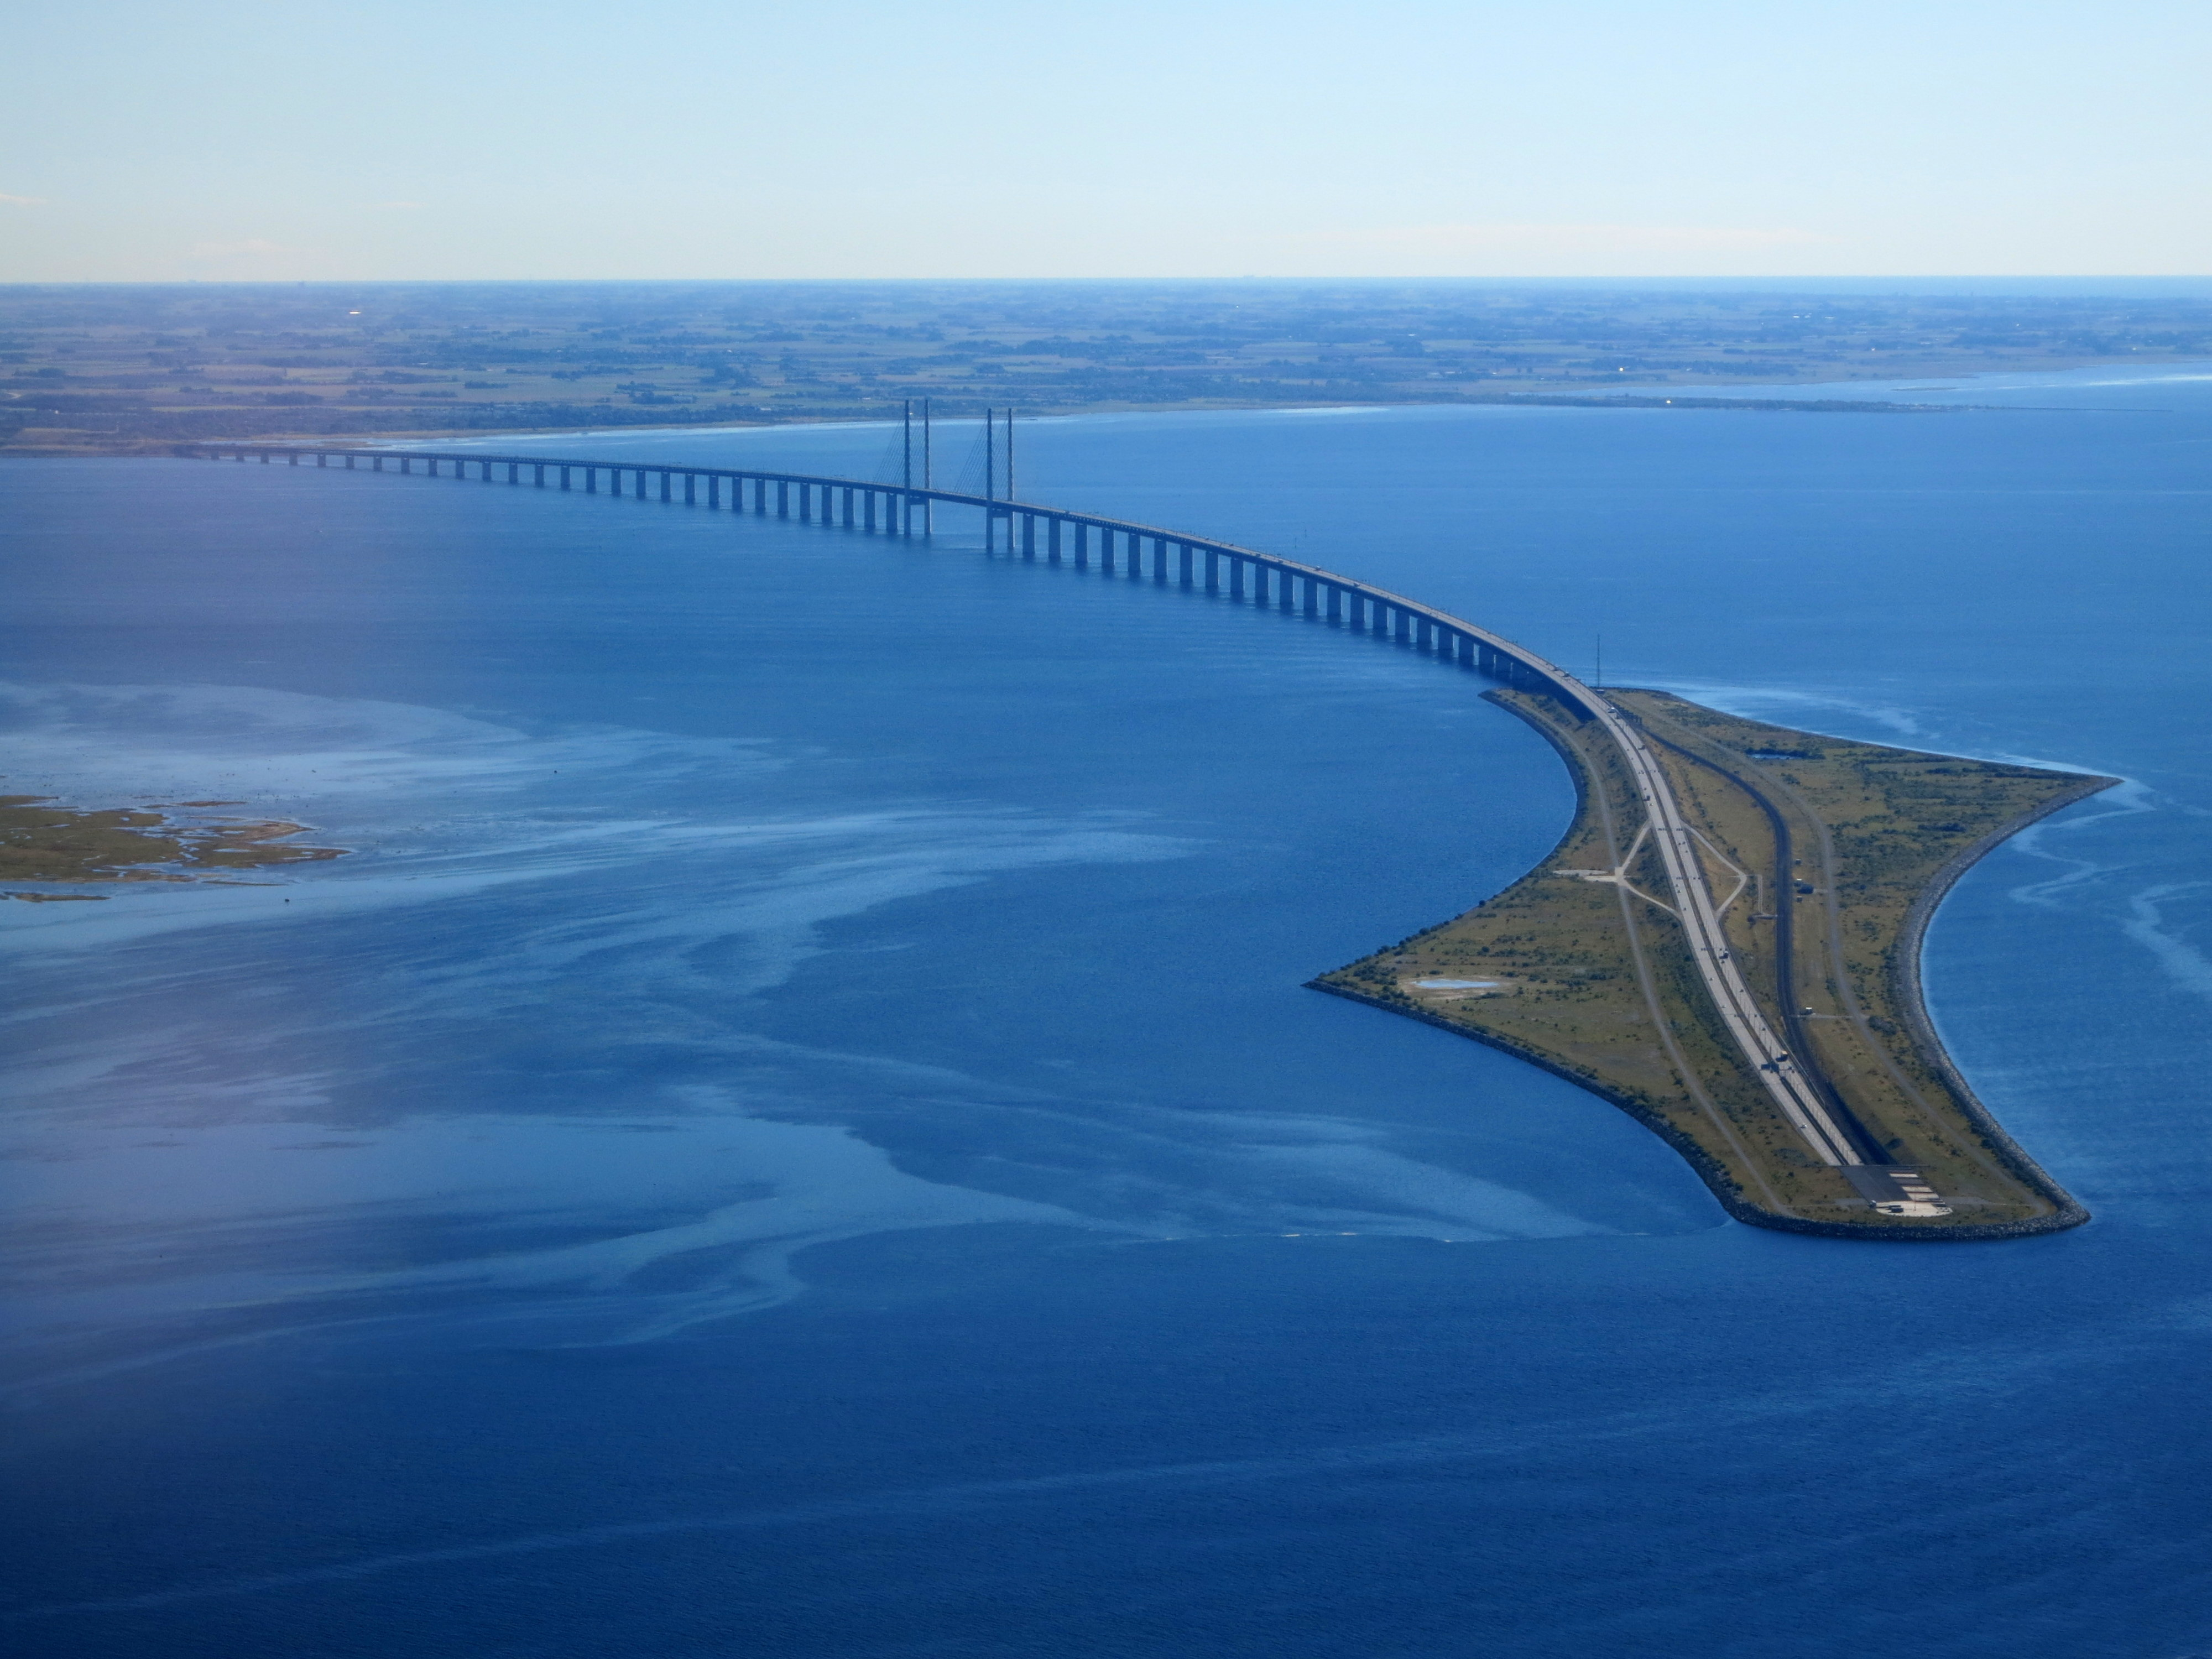 Øresund_Bridge_from_the_air_in_September